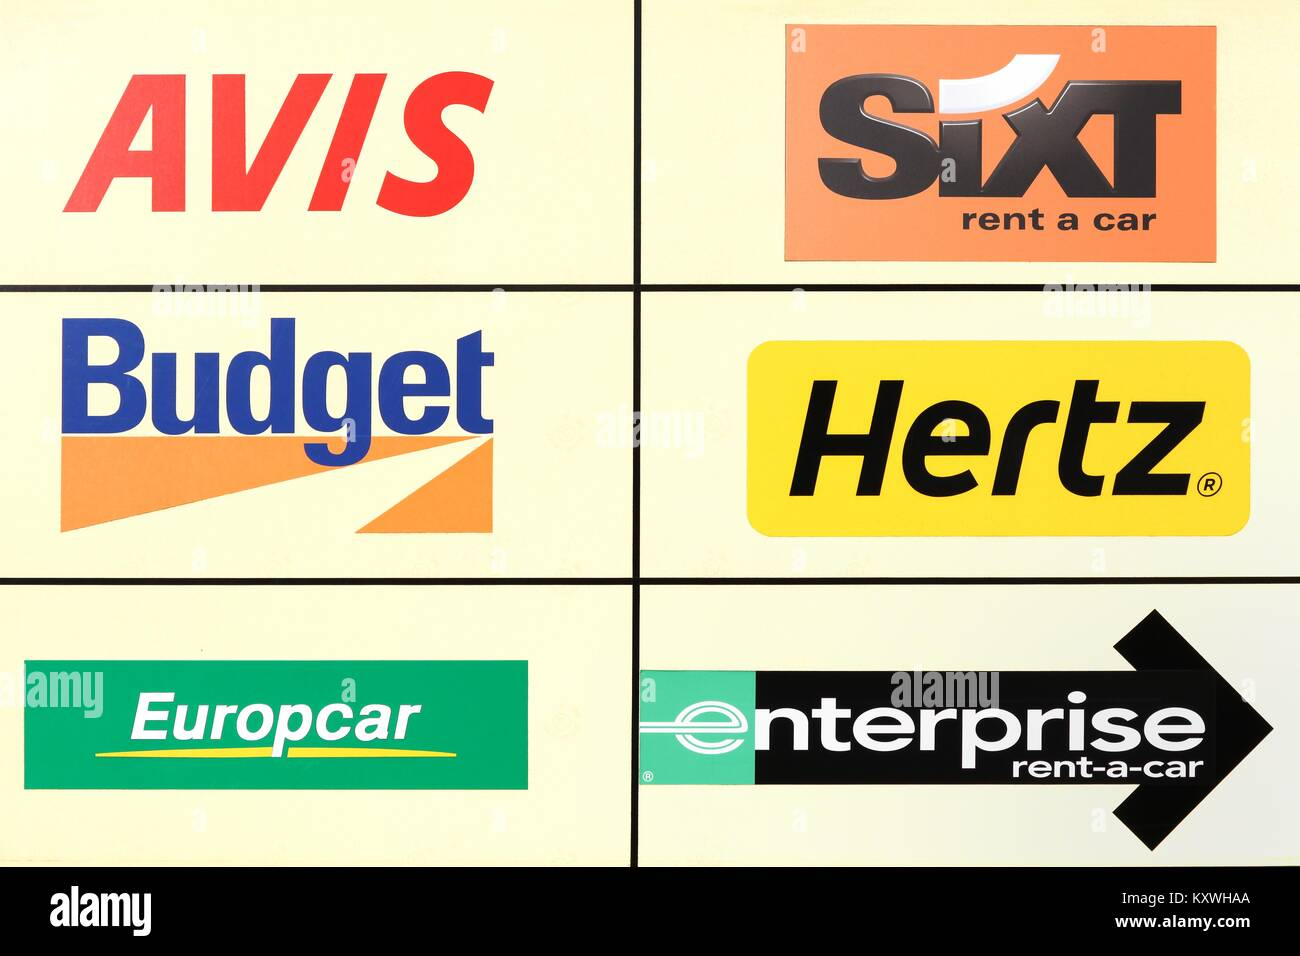 Major Car Rental Companies In South Africa